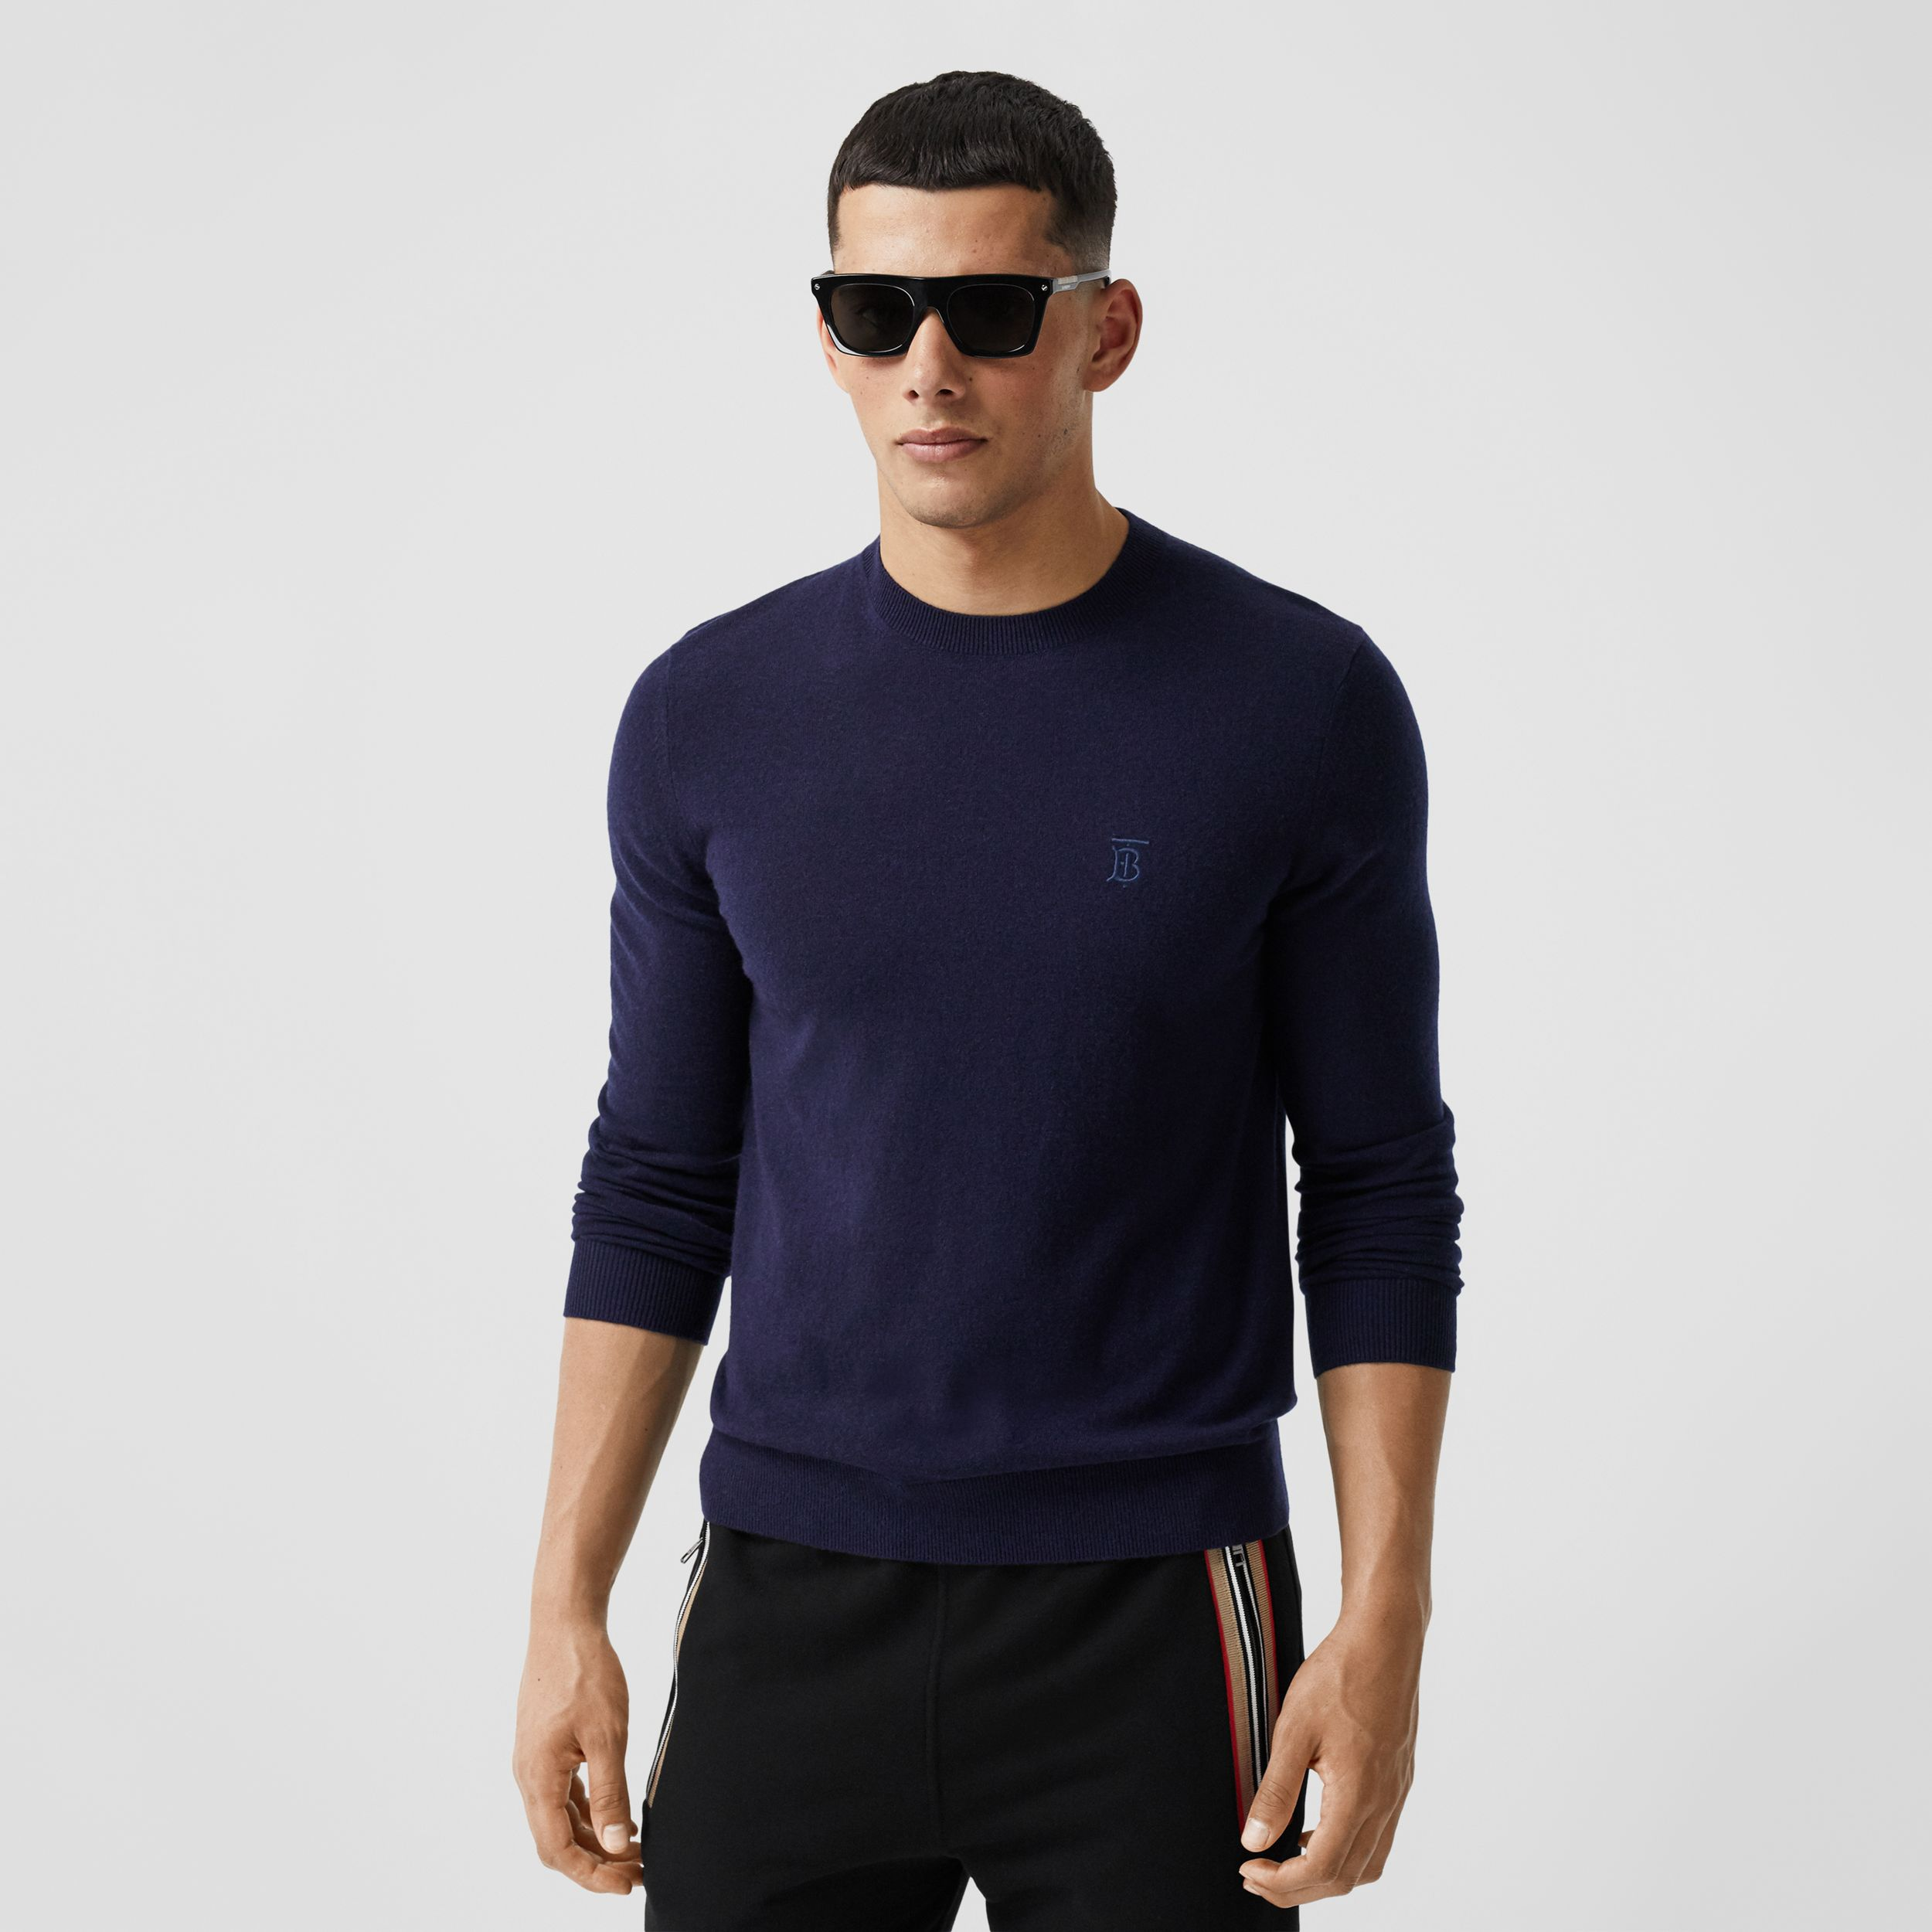 Monogram Motif Cashmere Sweater in Navy - Men | Burberry - 1